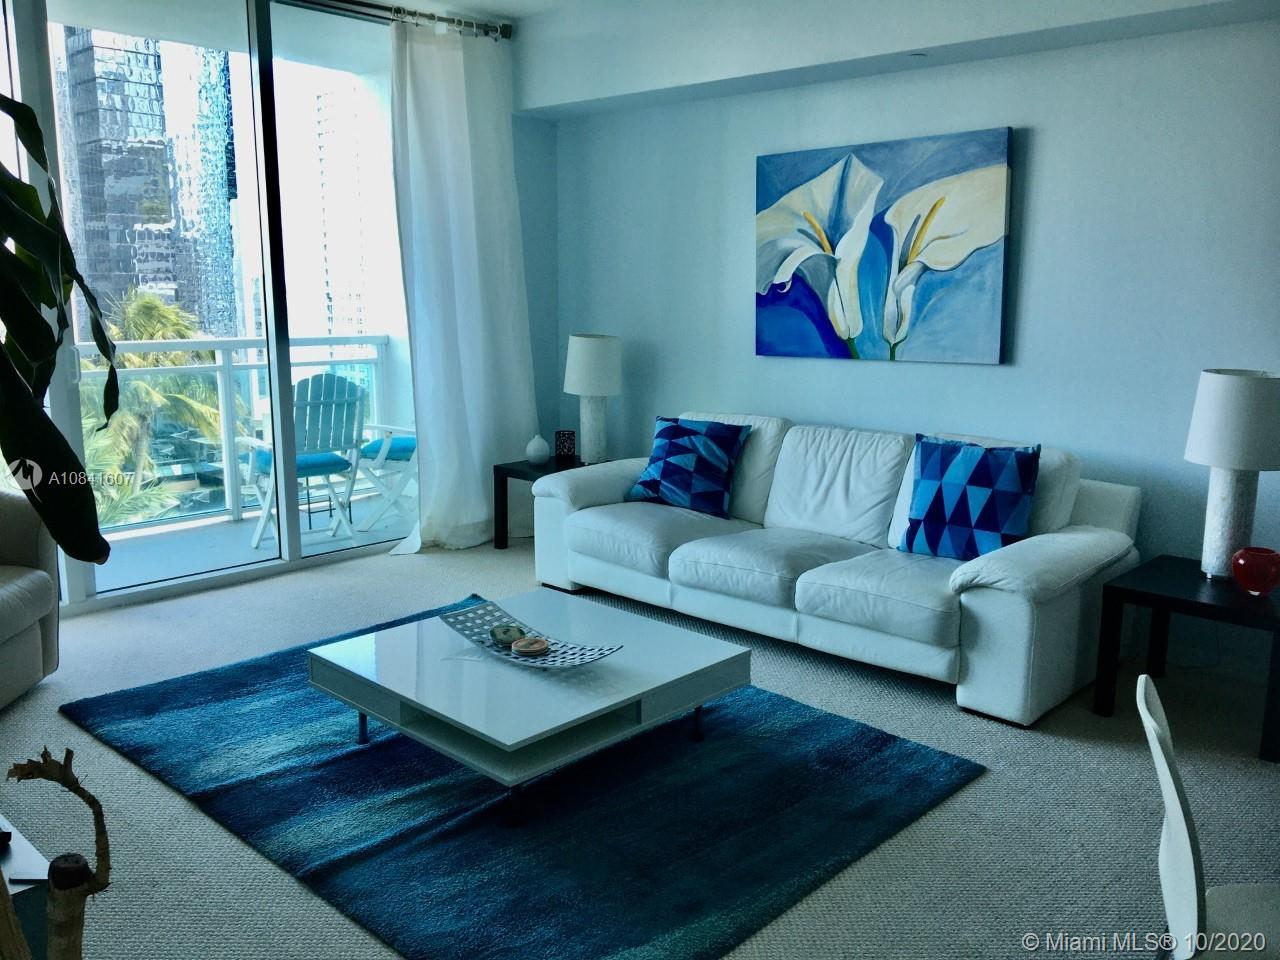 The Plaza on Brickell 2 #1508 - 951 Brickell Ave #1508, Miami, FL 33131